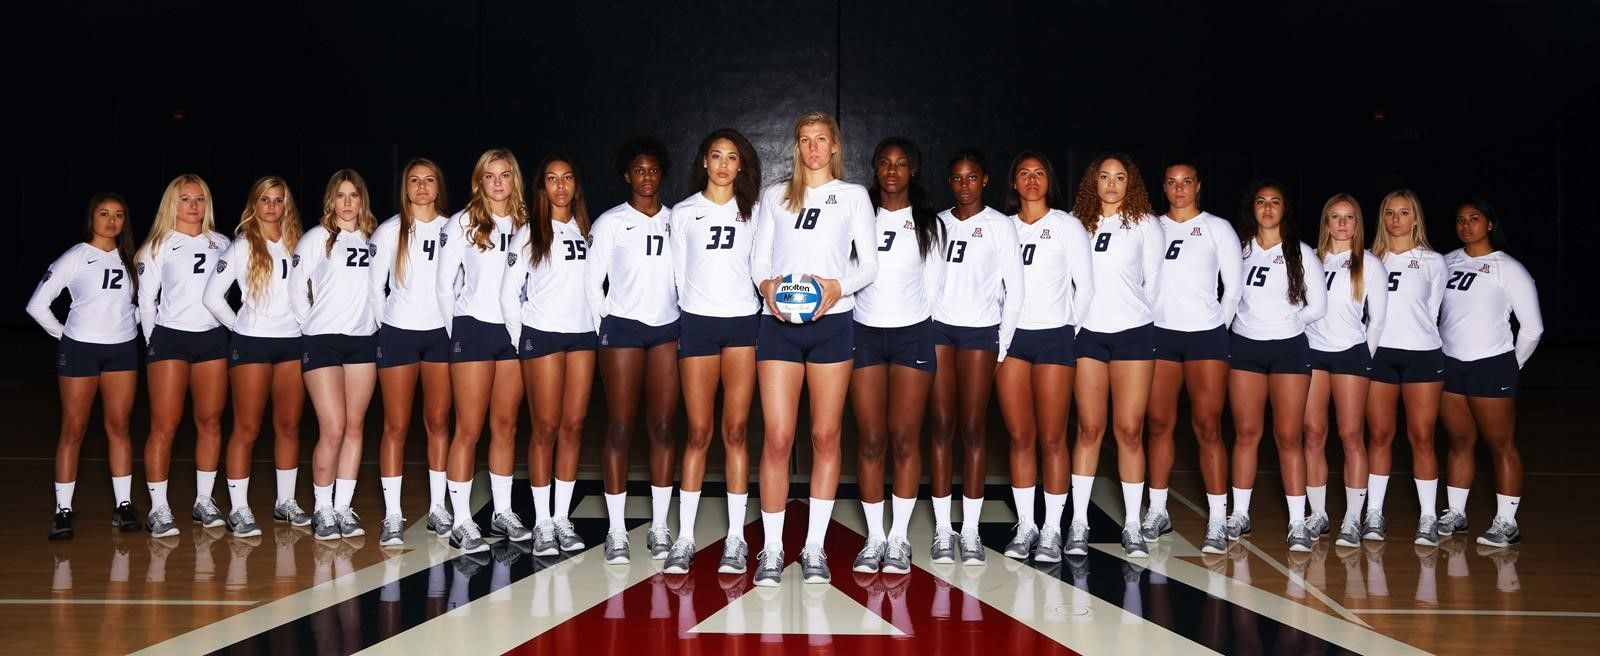 2016 Volleyball Roster Arizonawildcats Com University Of Arizona Athletics Volleyball Roster Volleyball News